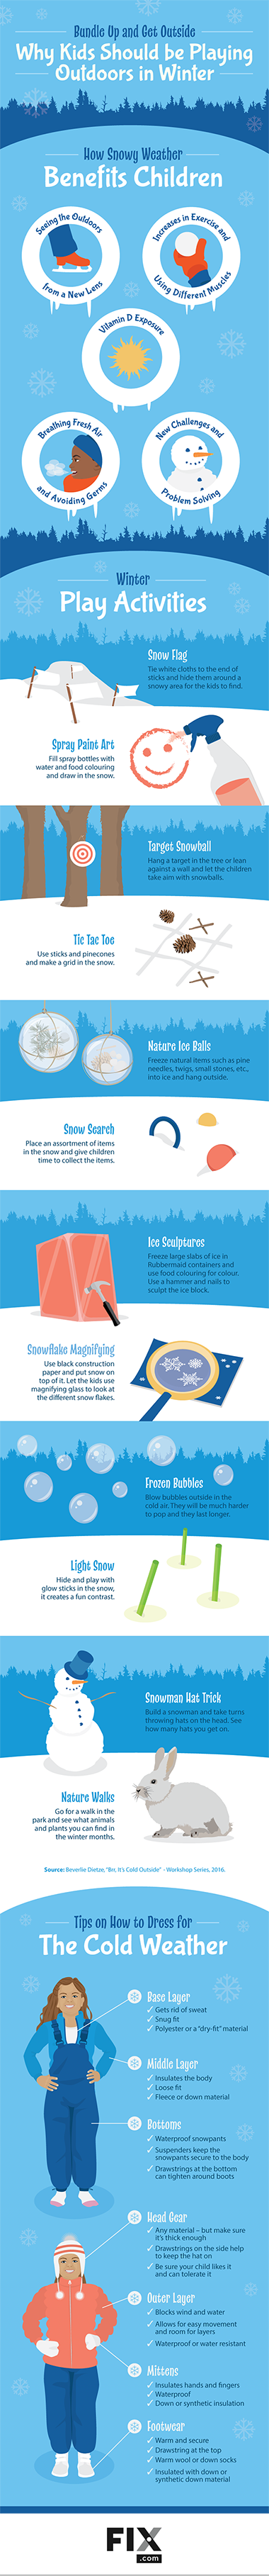 bundle up and get outside why kids should play outdoors in winter